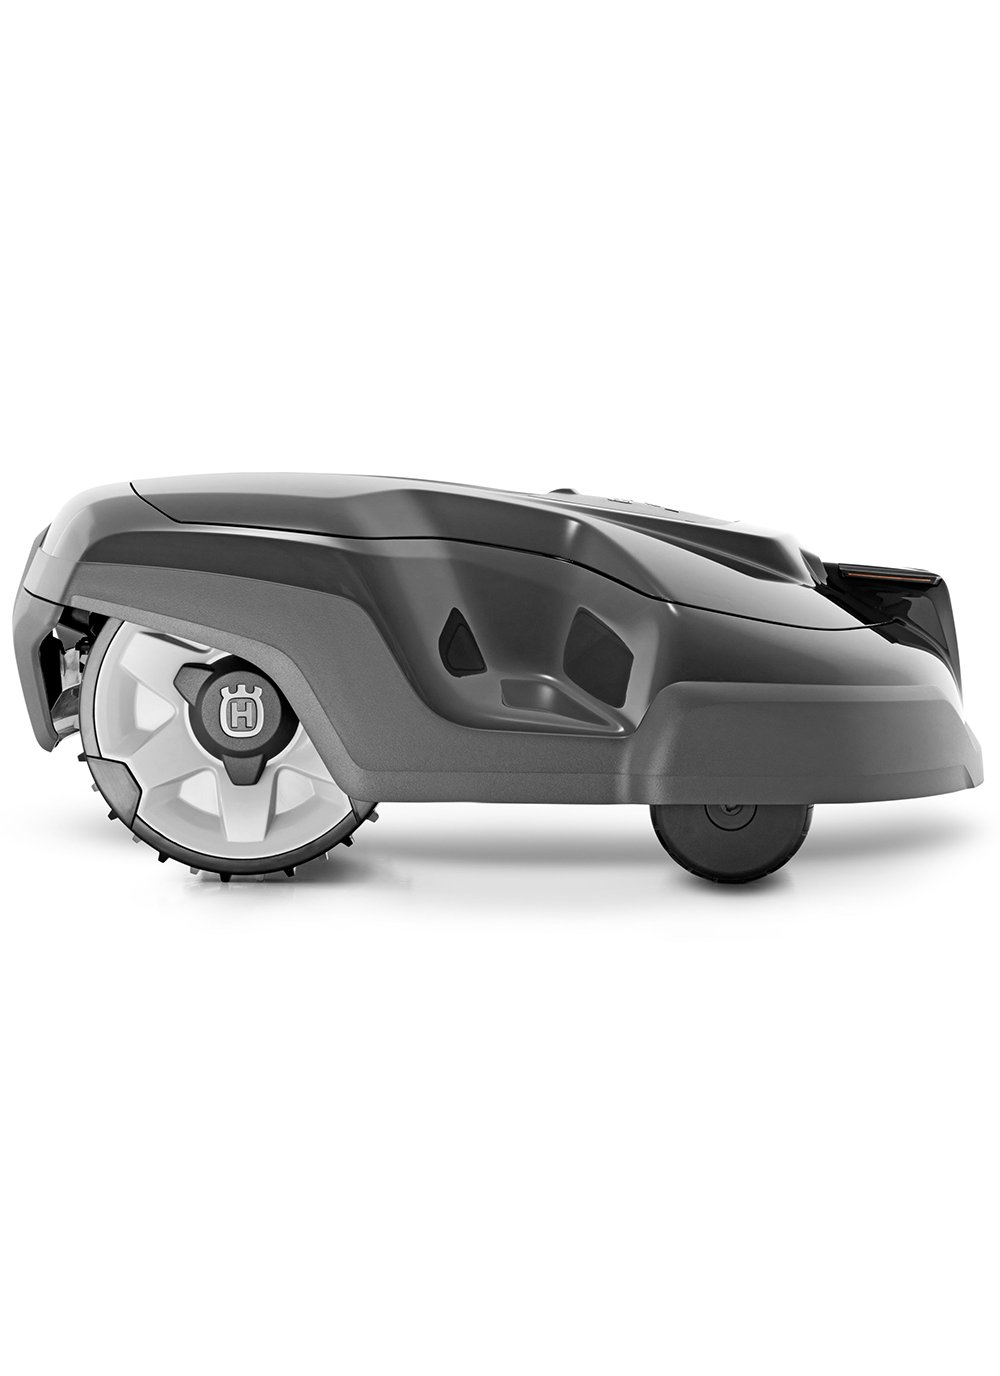 ROBOT CORTACESPED HUSQVARNA AUTOMOWER 315: Amazon.es: Hogar